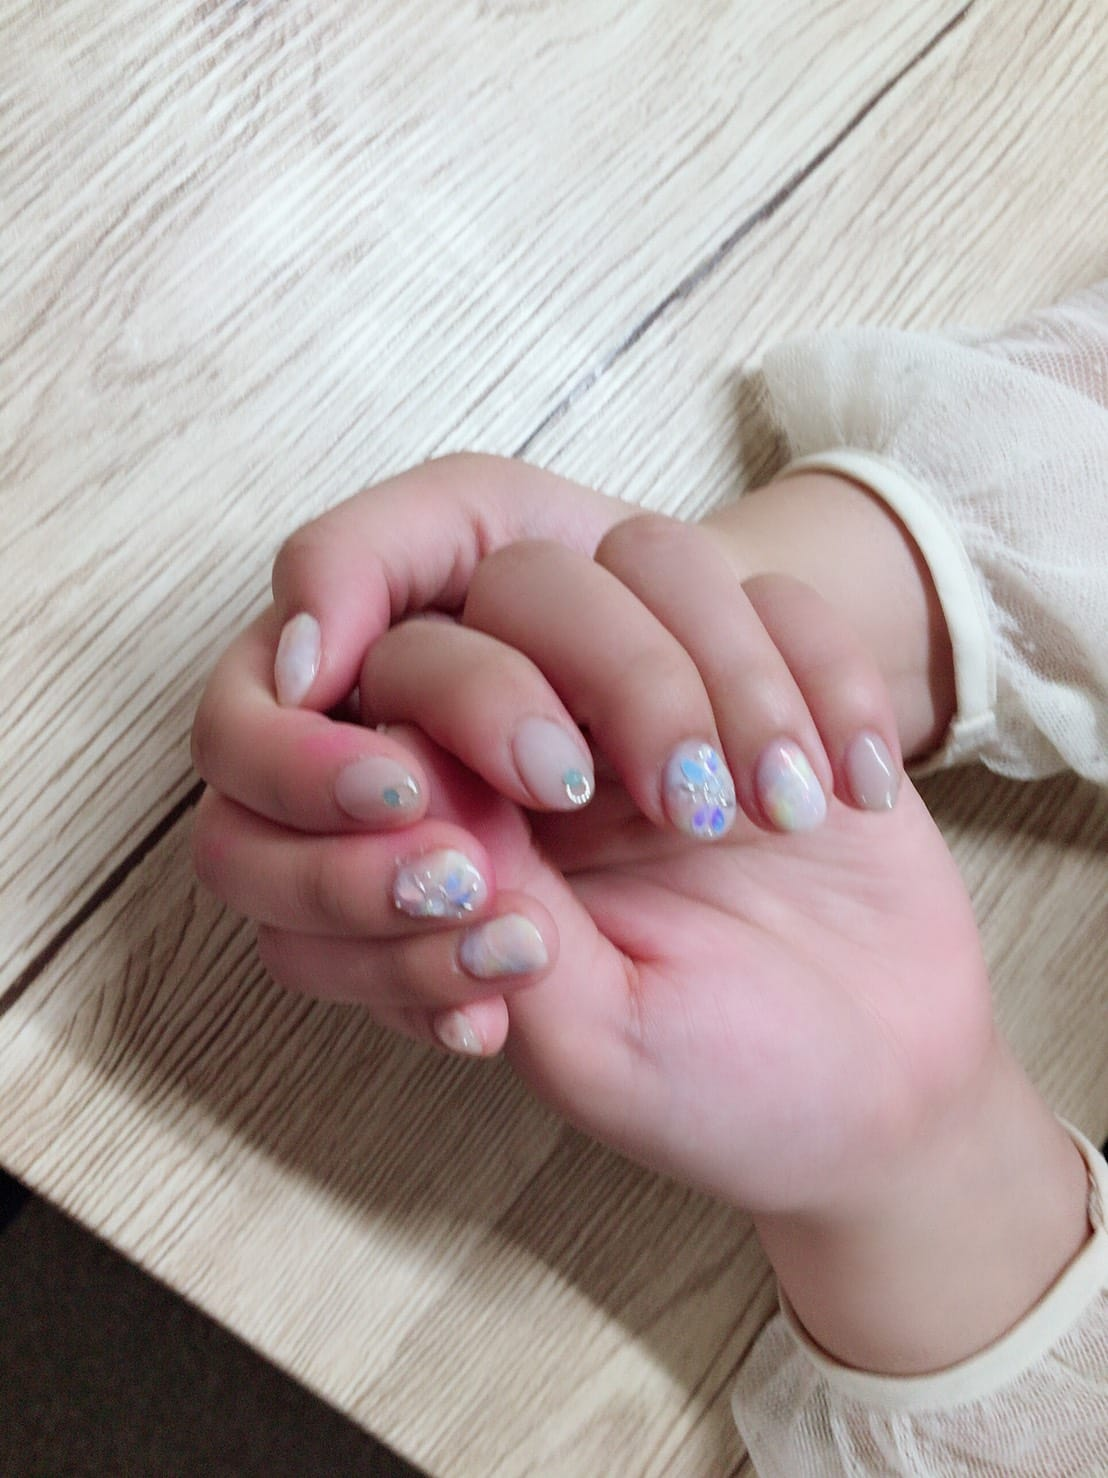 「new_nail_♡」05/15(05/15) 06:49 | みるくちゃんの写メ・風俗動画